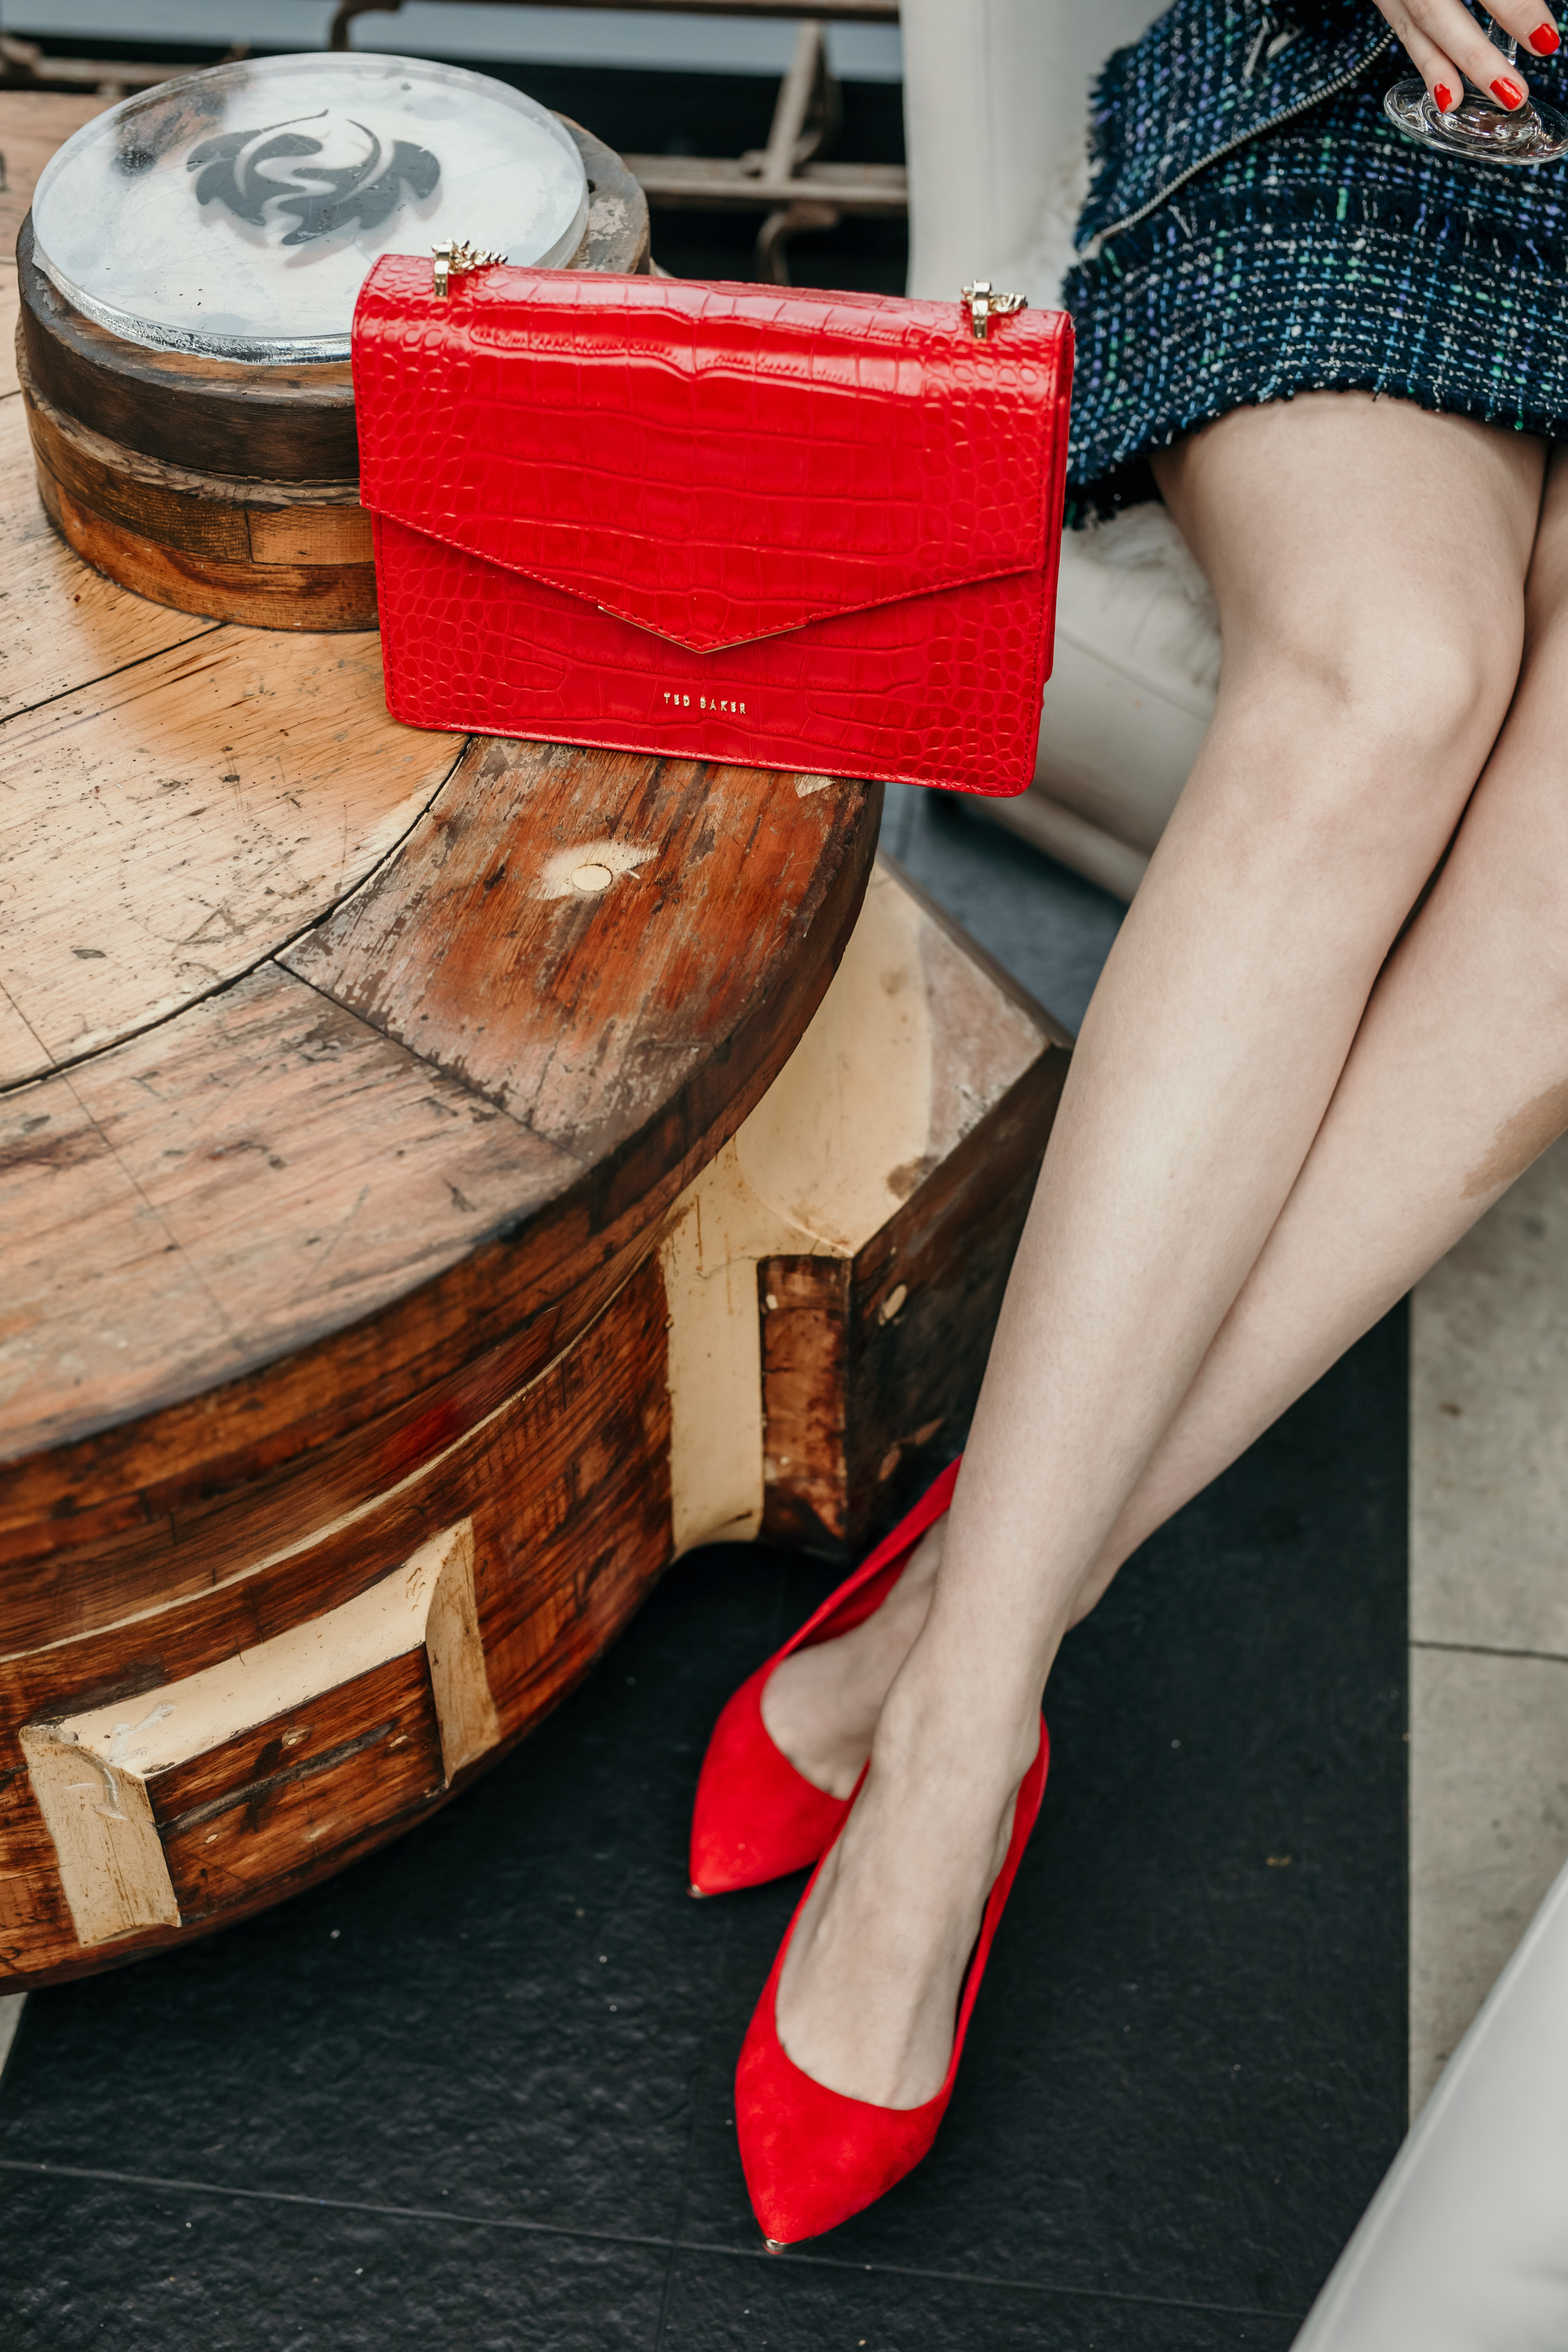 Ted Baker Red Croc Envelope Bag and Red Shoes